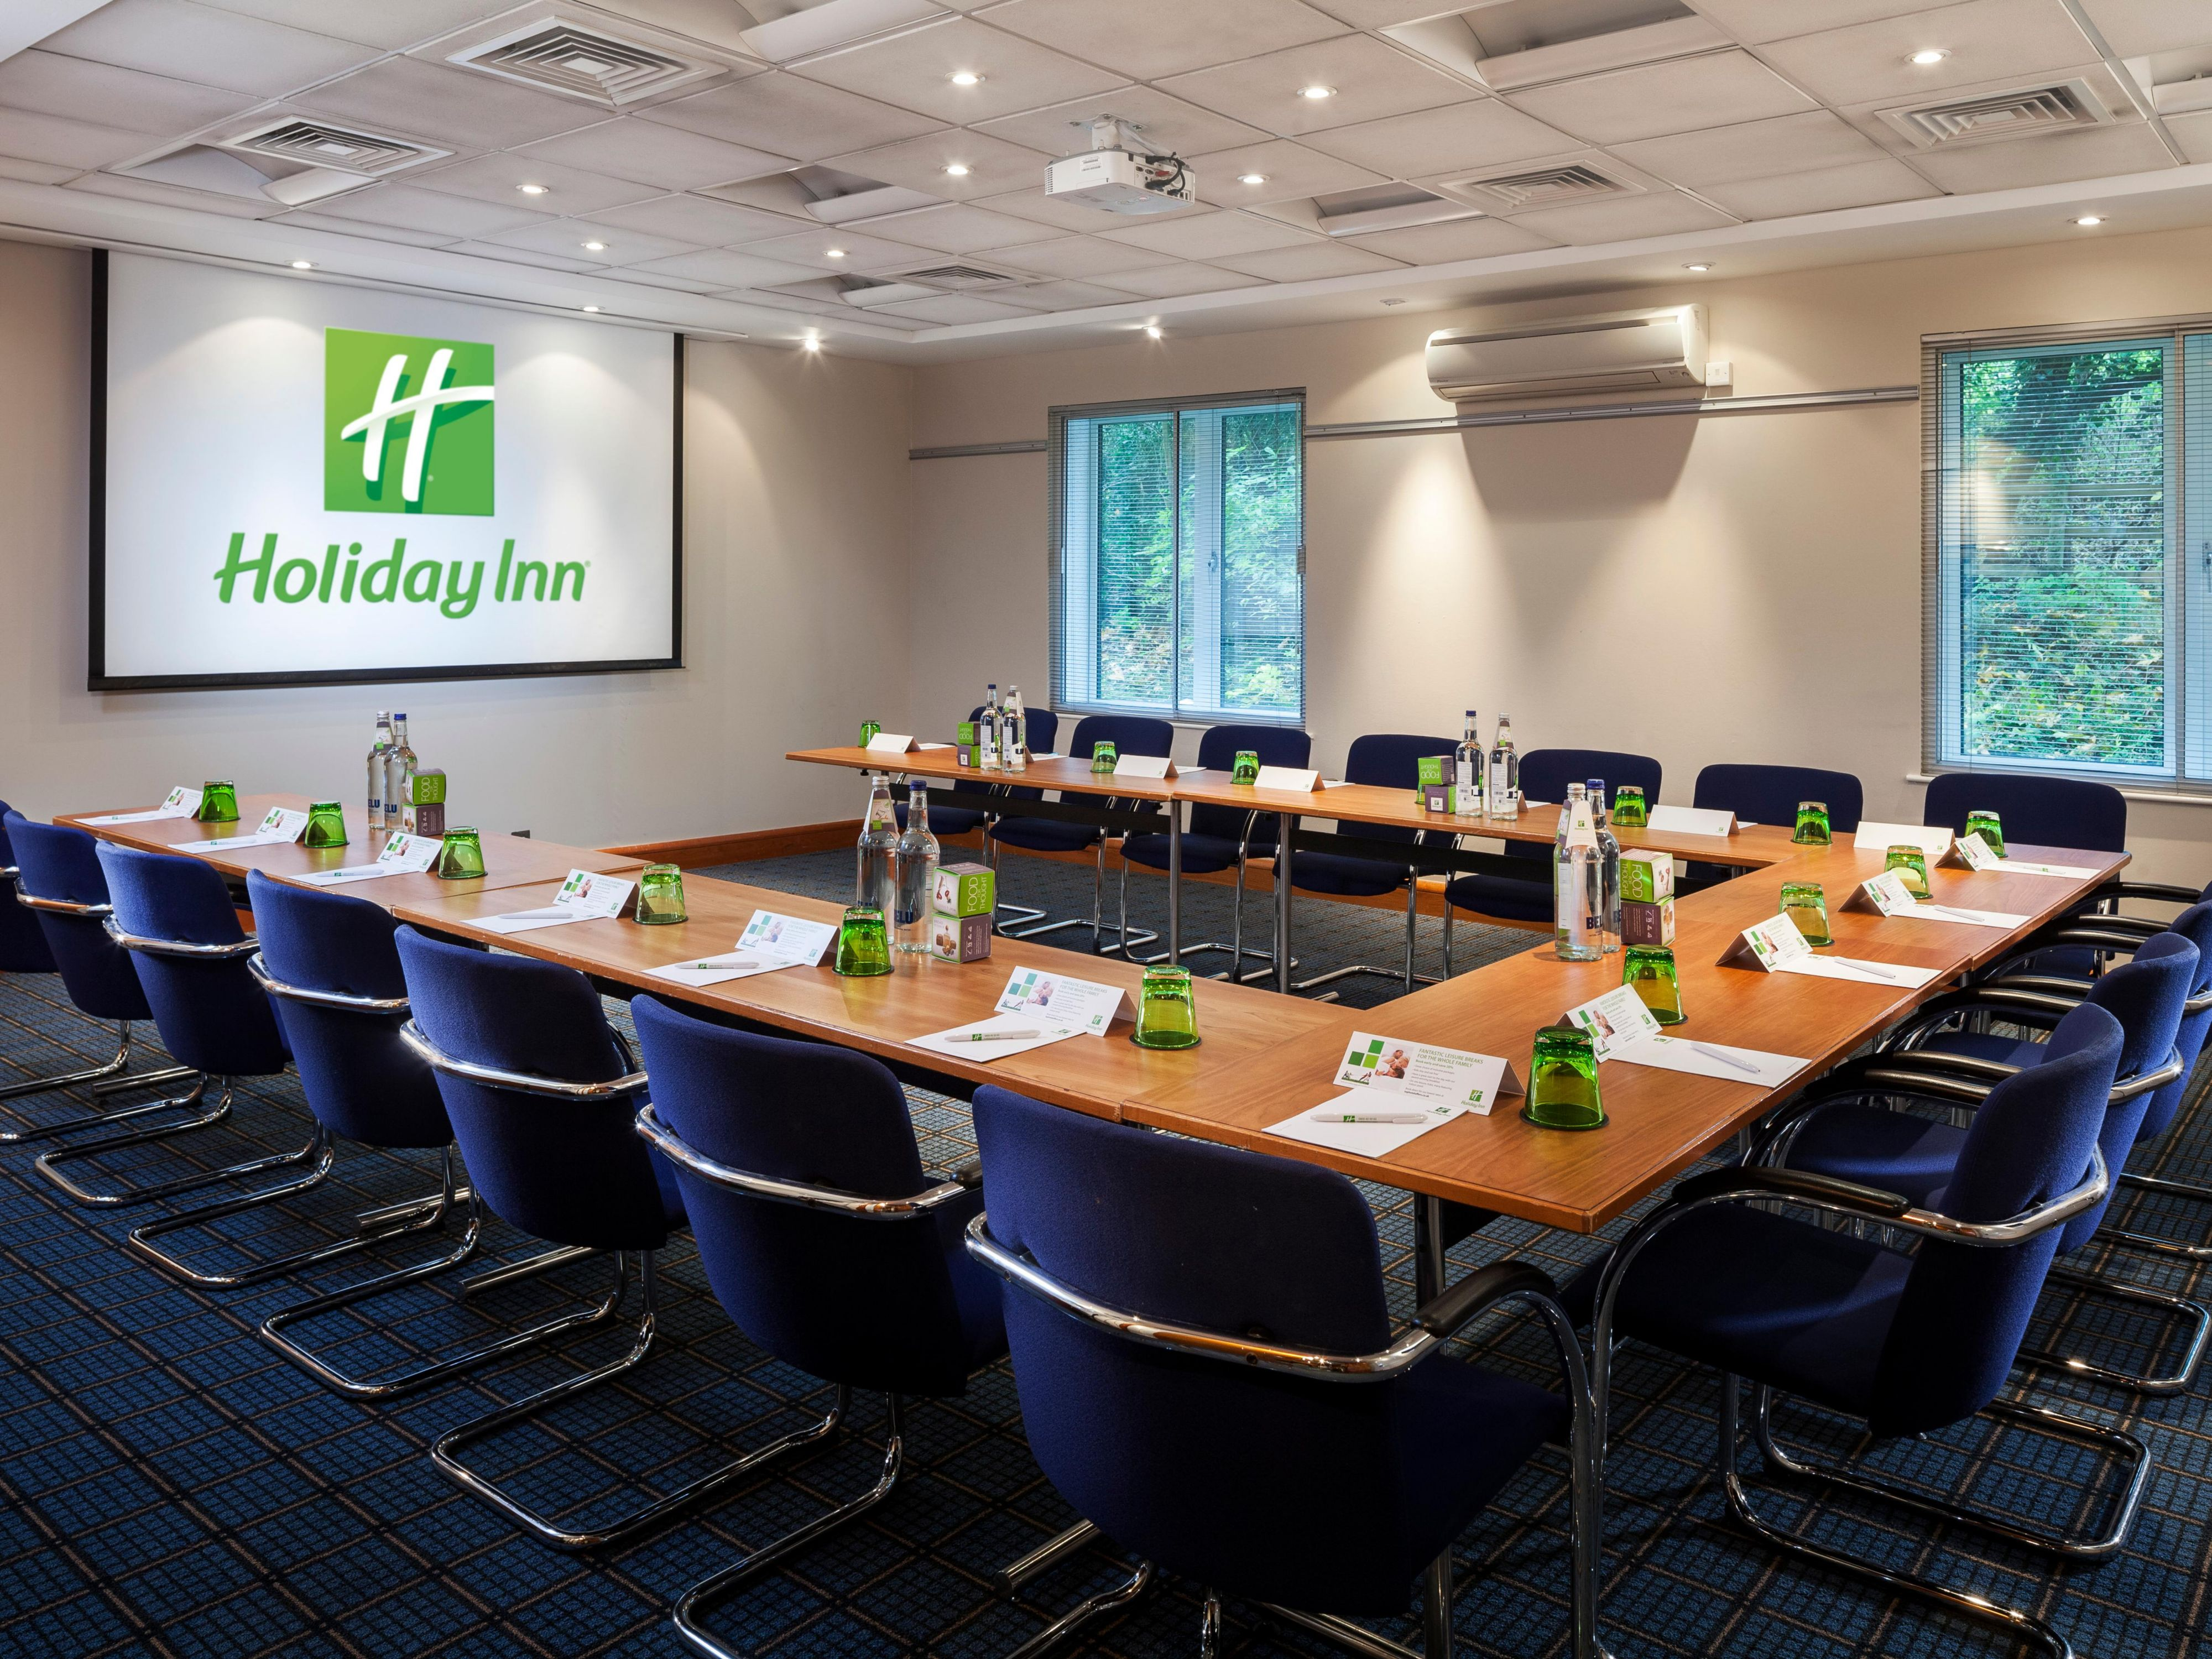 Medium size conference room